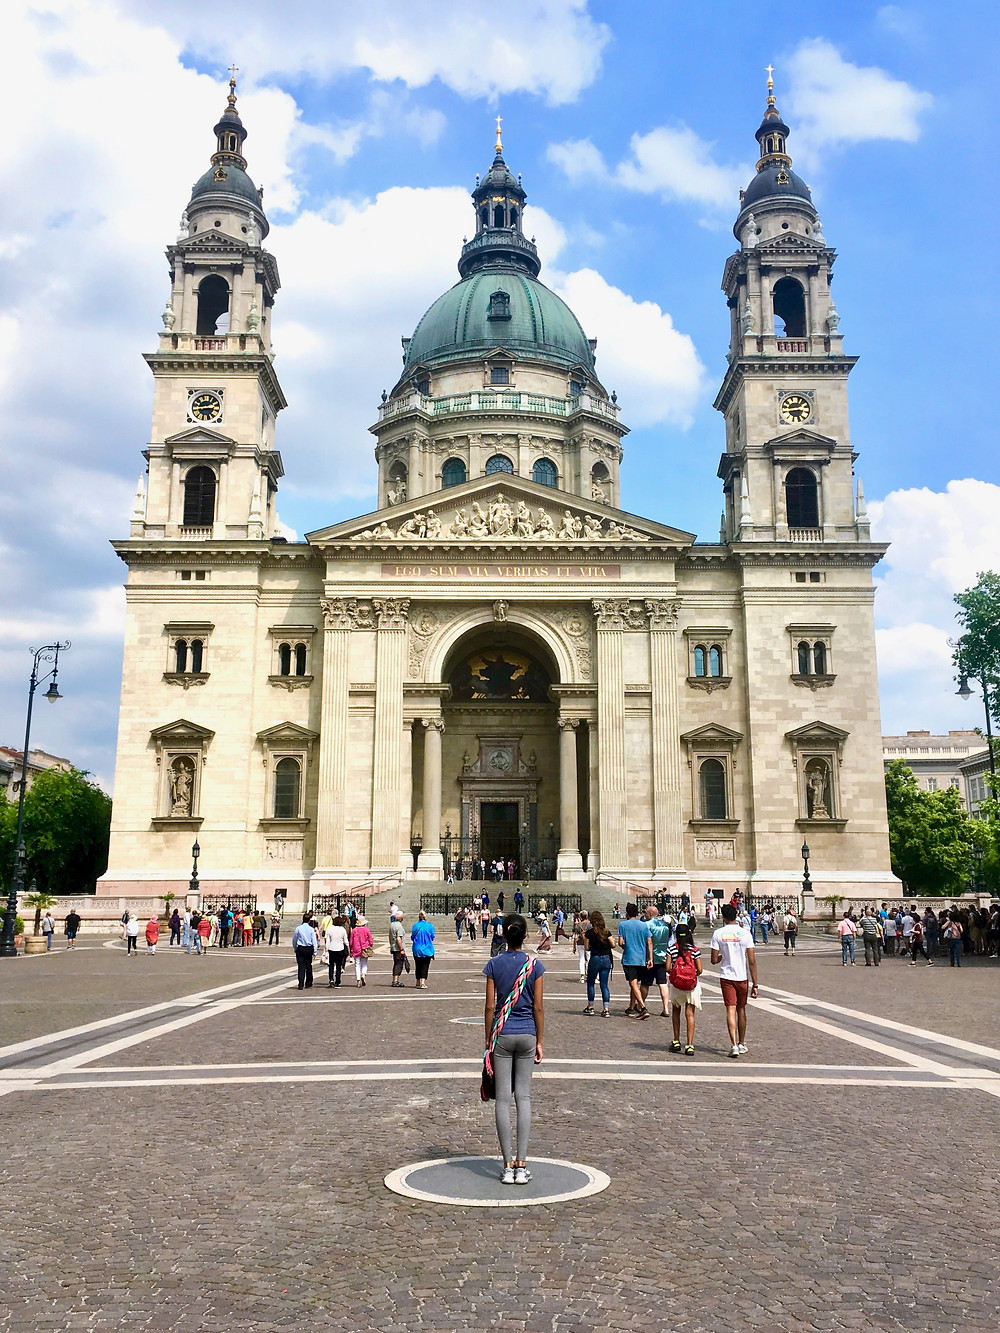 Eryn standing in front of St. Stephen's Basilica under a partly cloudy blue sky in Budapest